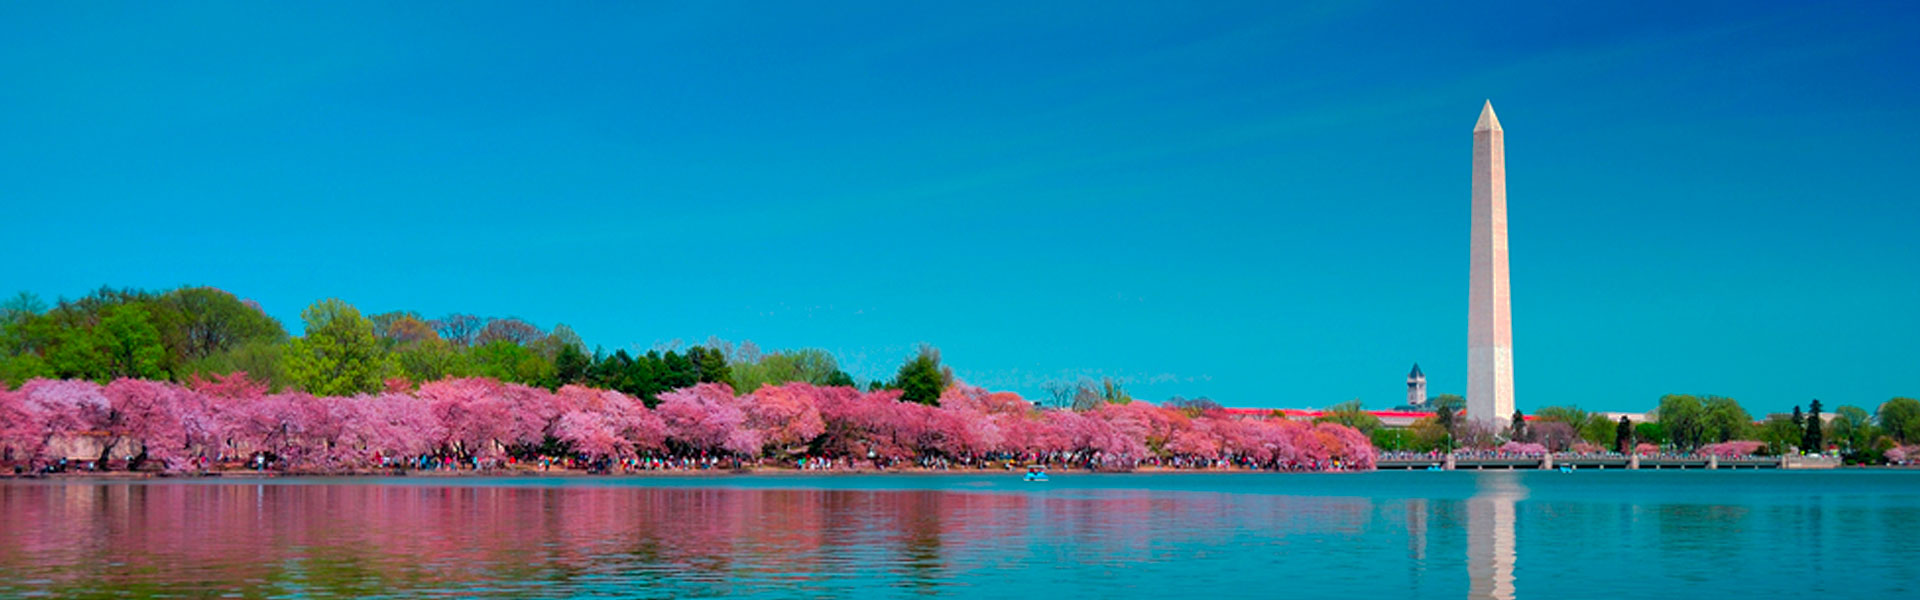 View of the Washington Monument and Cherry Blossoms across Tidal basin